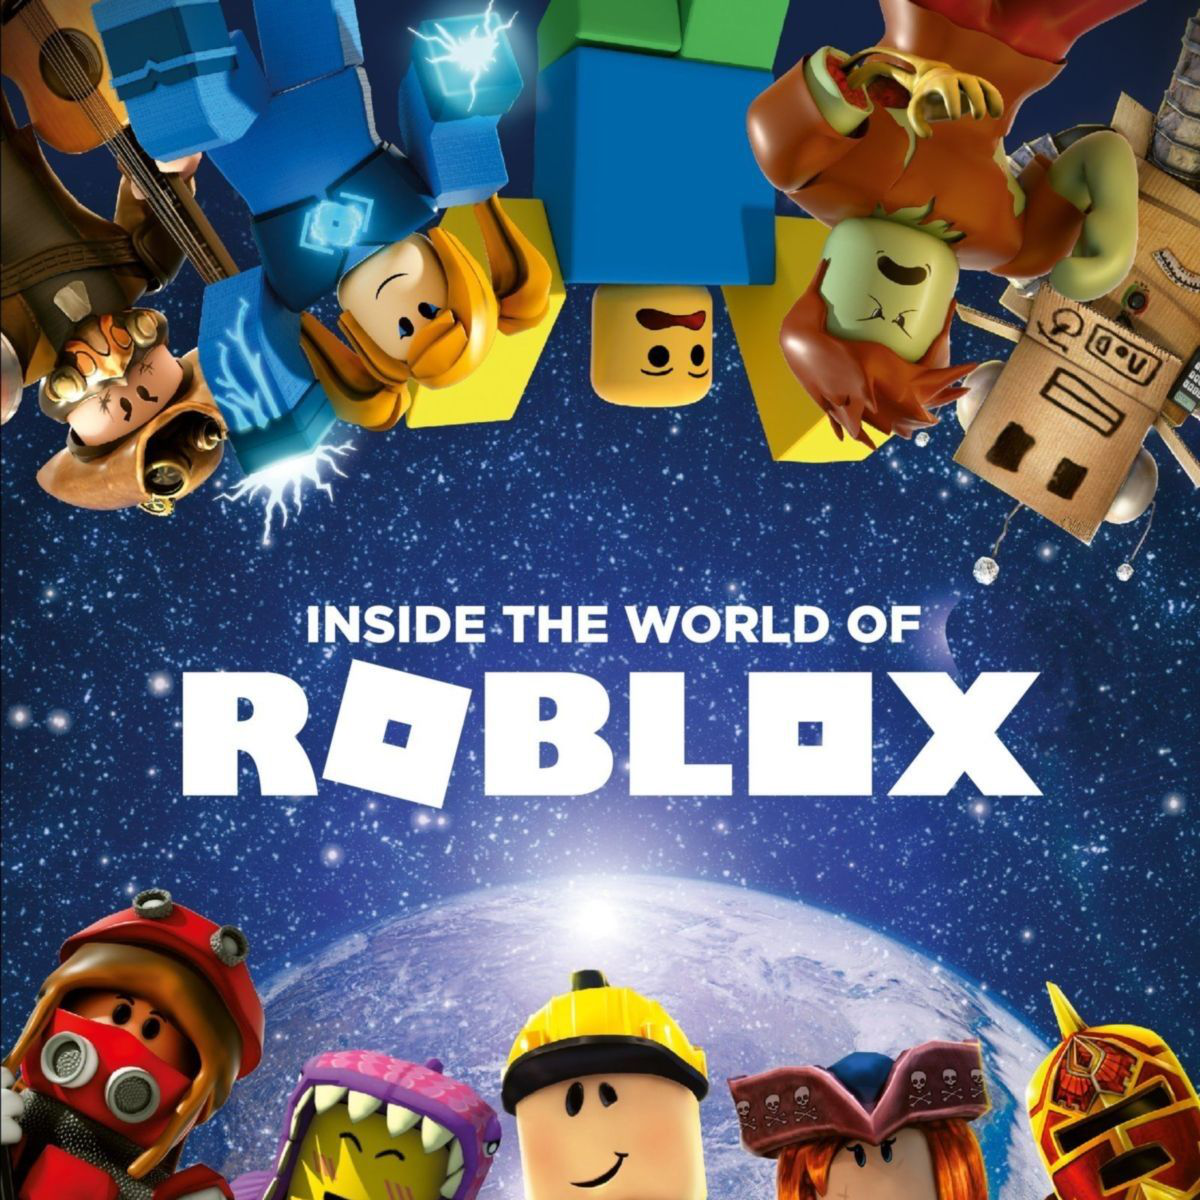 Roblox Gift Card 2000 Robux In 2020 Roblox Roblox Gifts Free